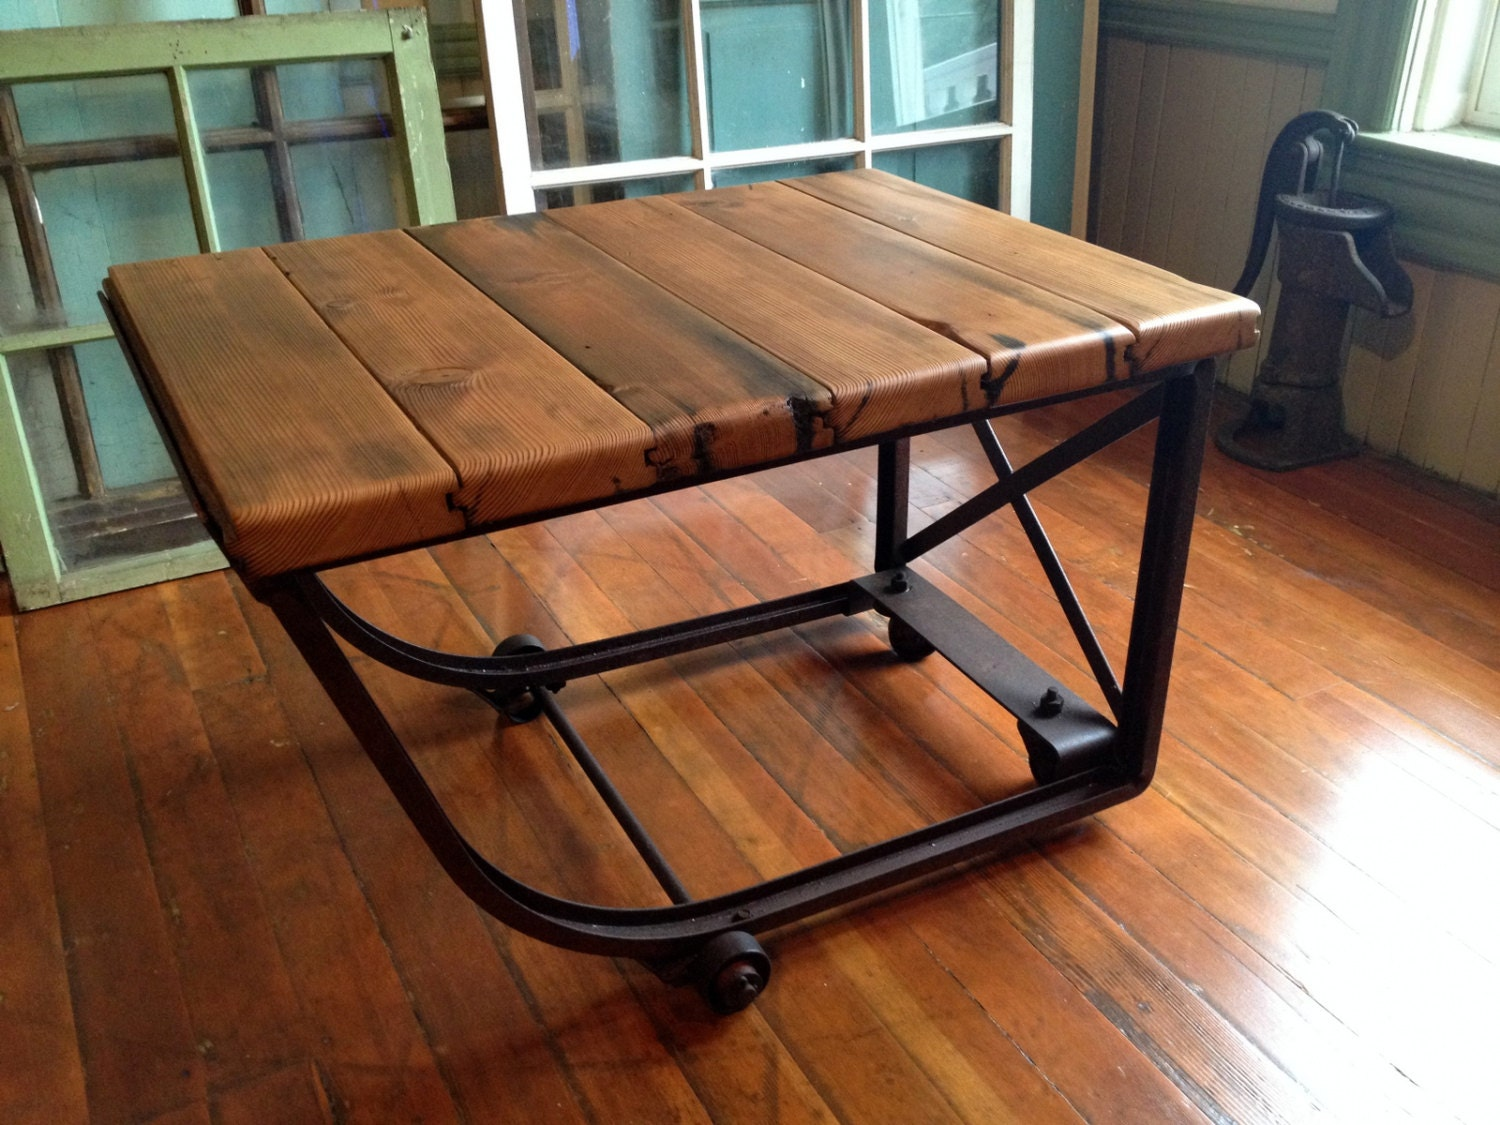 Reclaimed wood industrial coffee table metal casters barn for Repurposed metal furniture